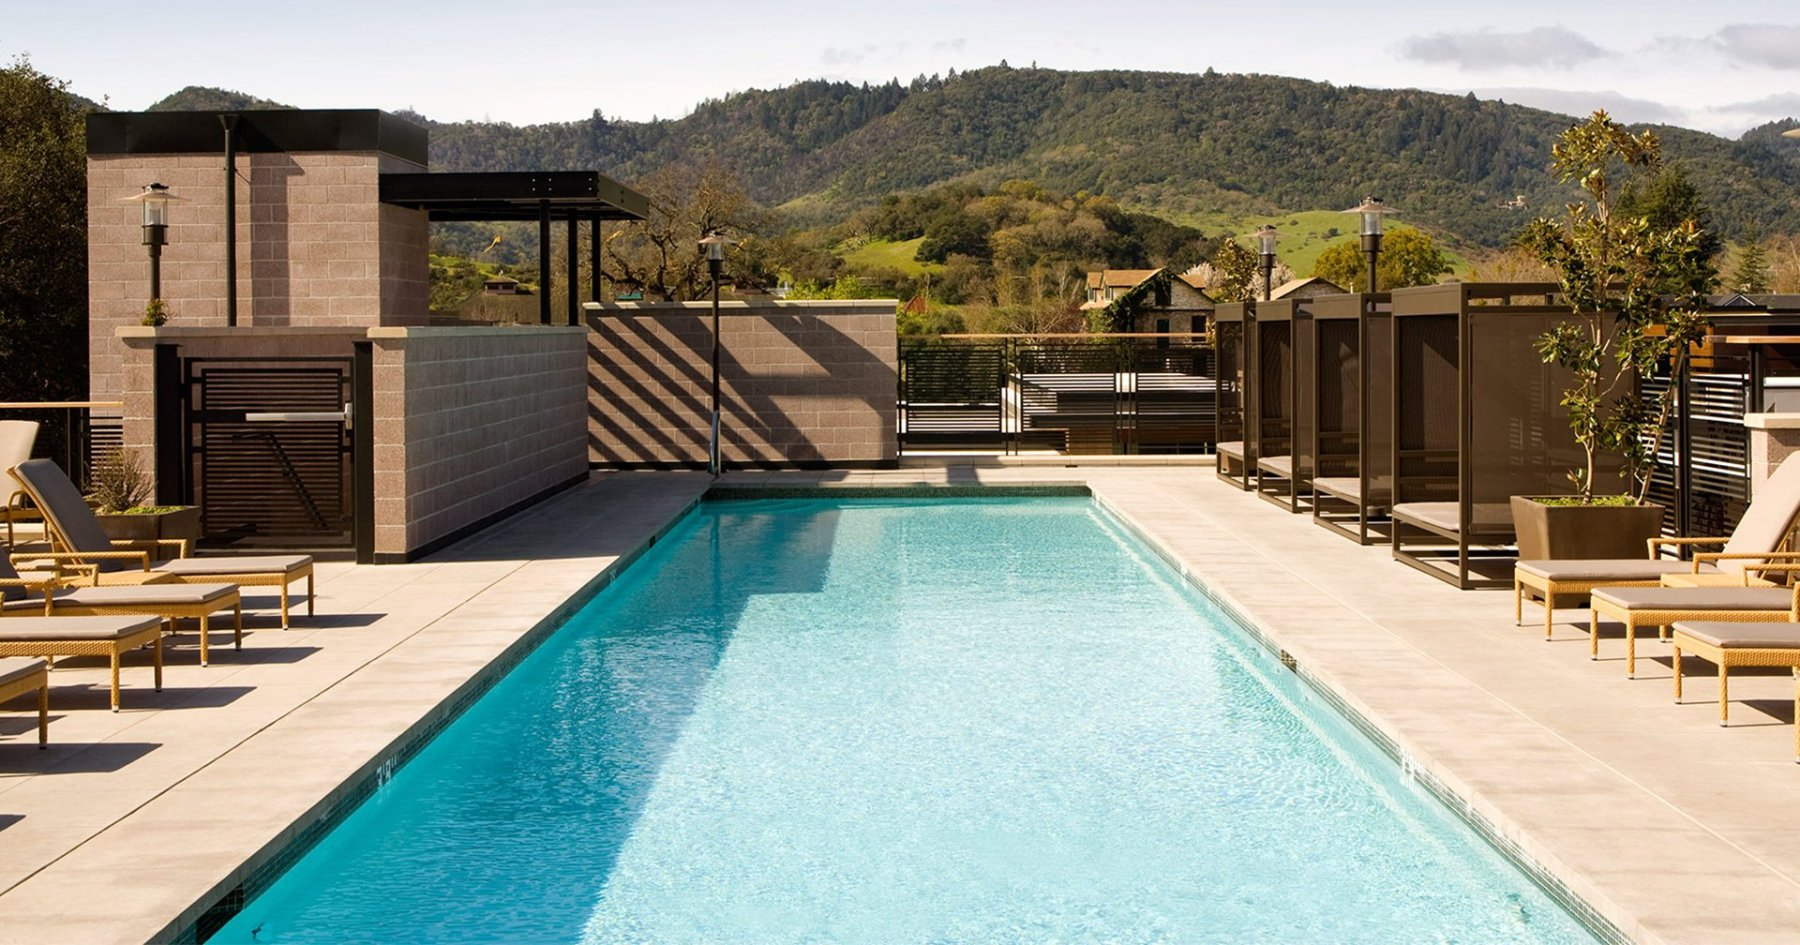 5 Spectacular Wine Country Hotel Pools Worth the Overnight